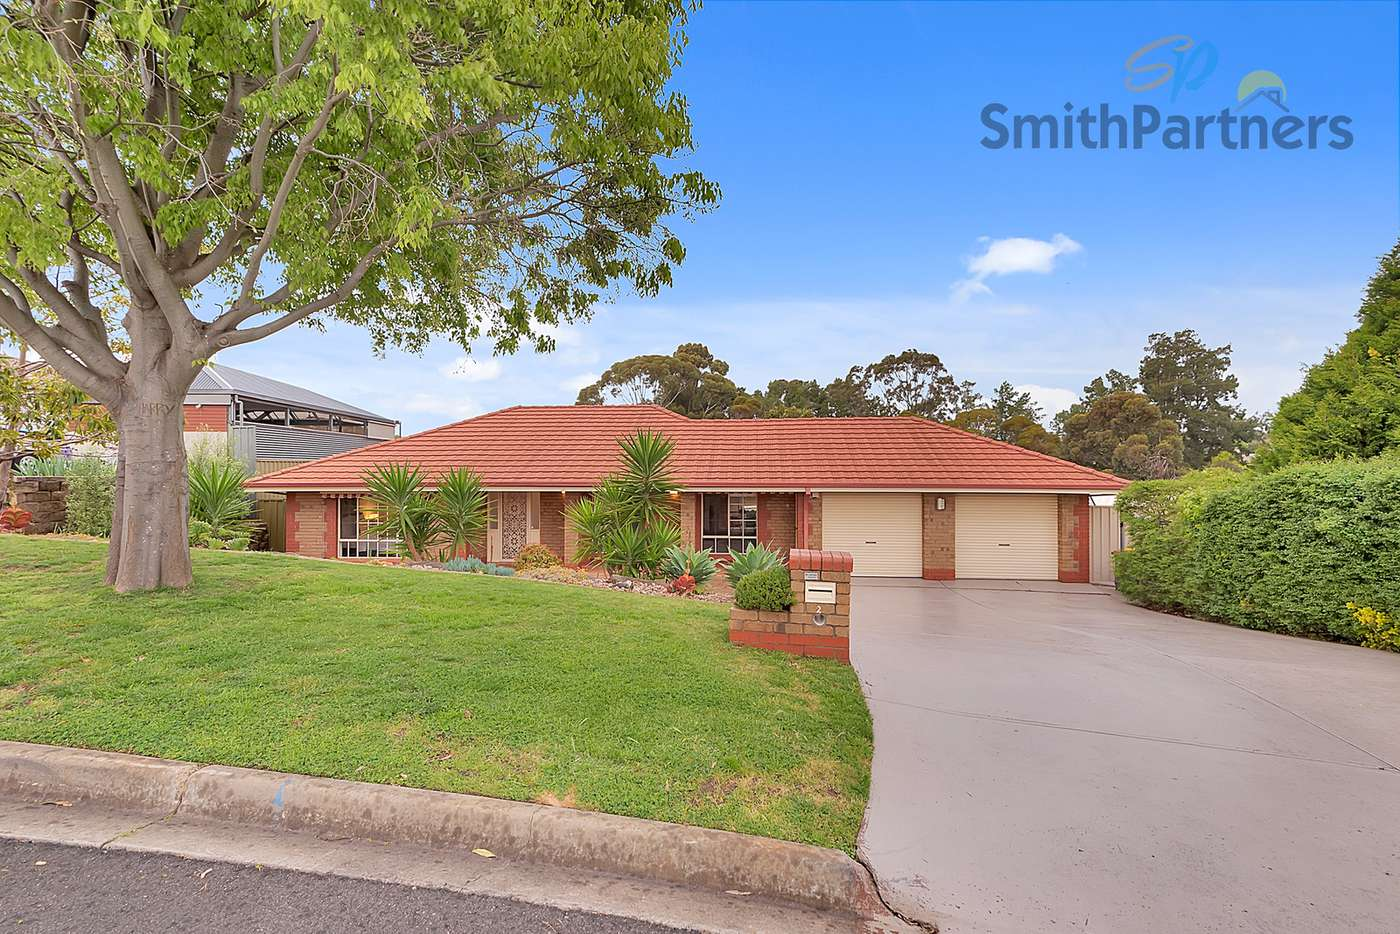 Main view of Homely house listing, 2 Grylls Court, Wynn Vale SA 5127